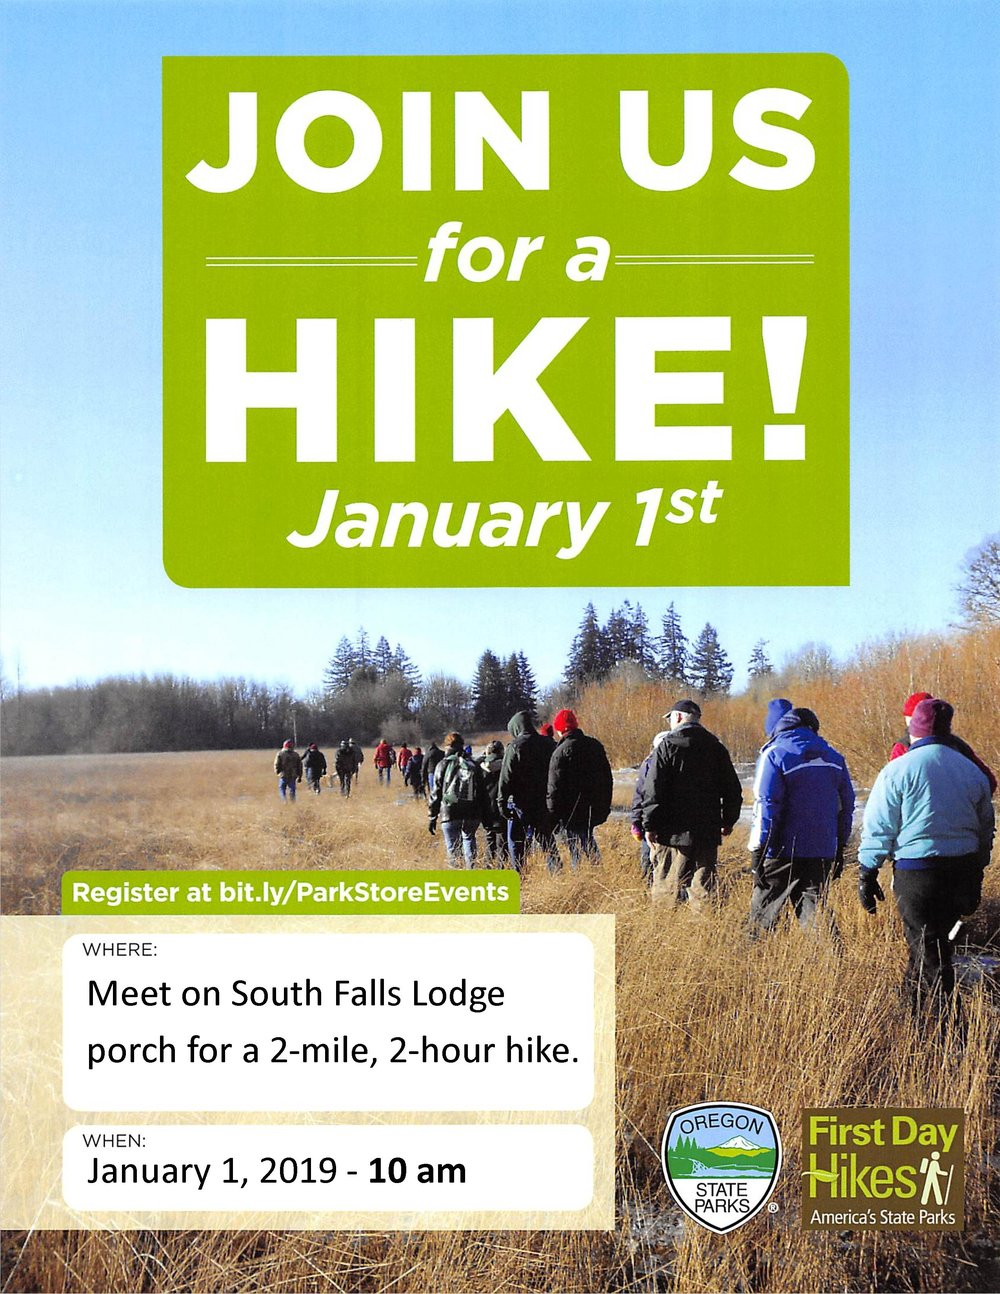 First Day Hike Flyer.jpg